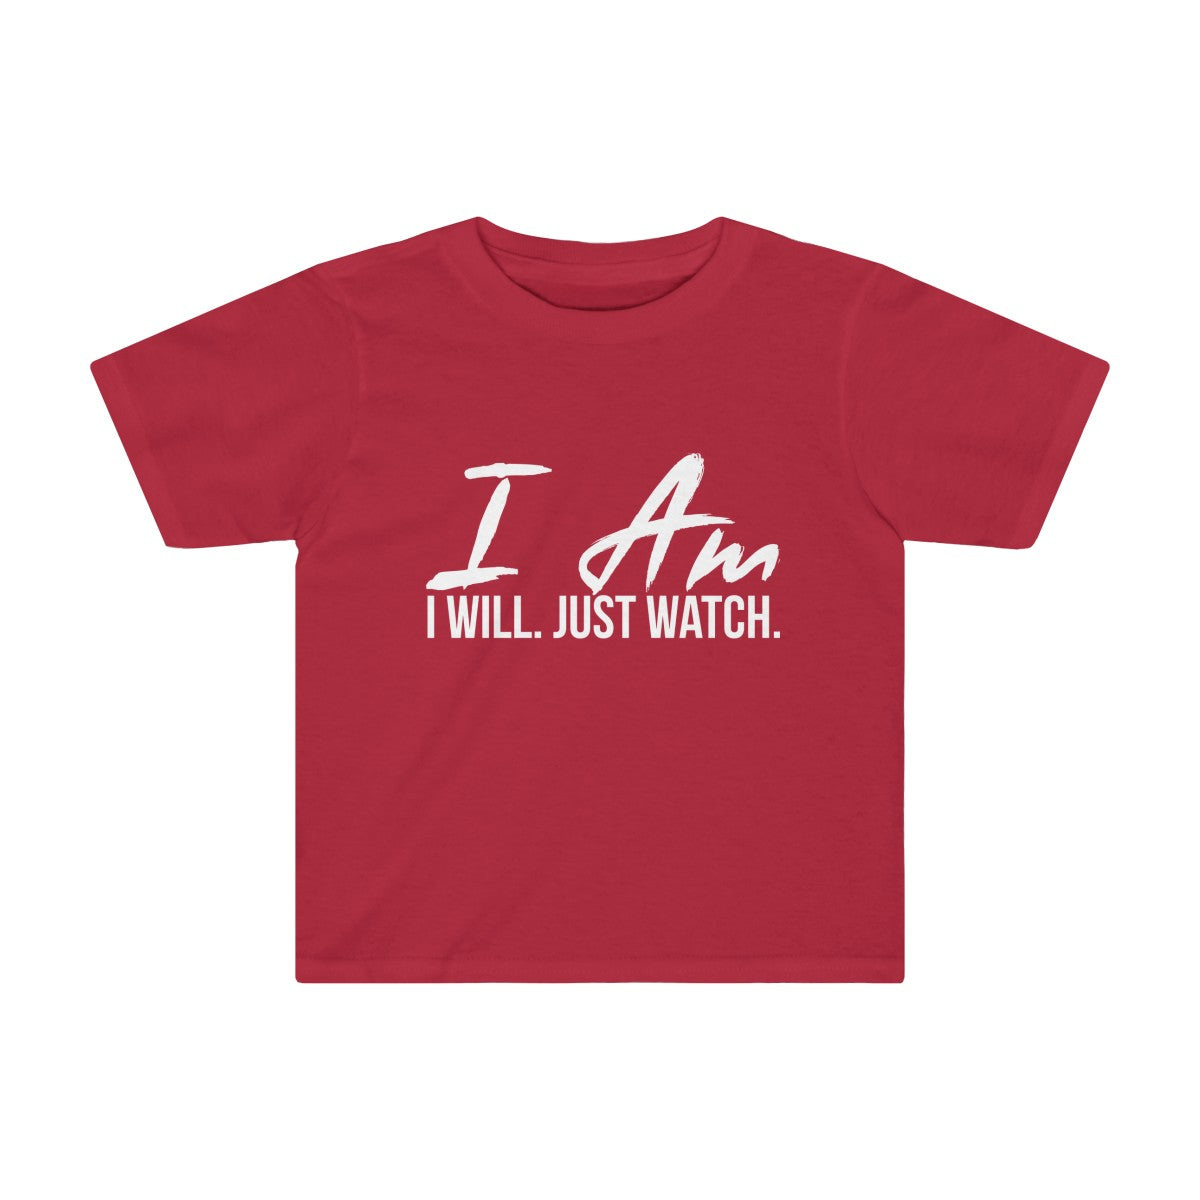 Toddler I AM. I WILL. JUST WATCH. Tee - Peyticakes